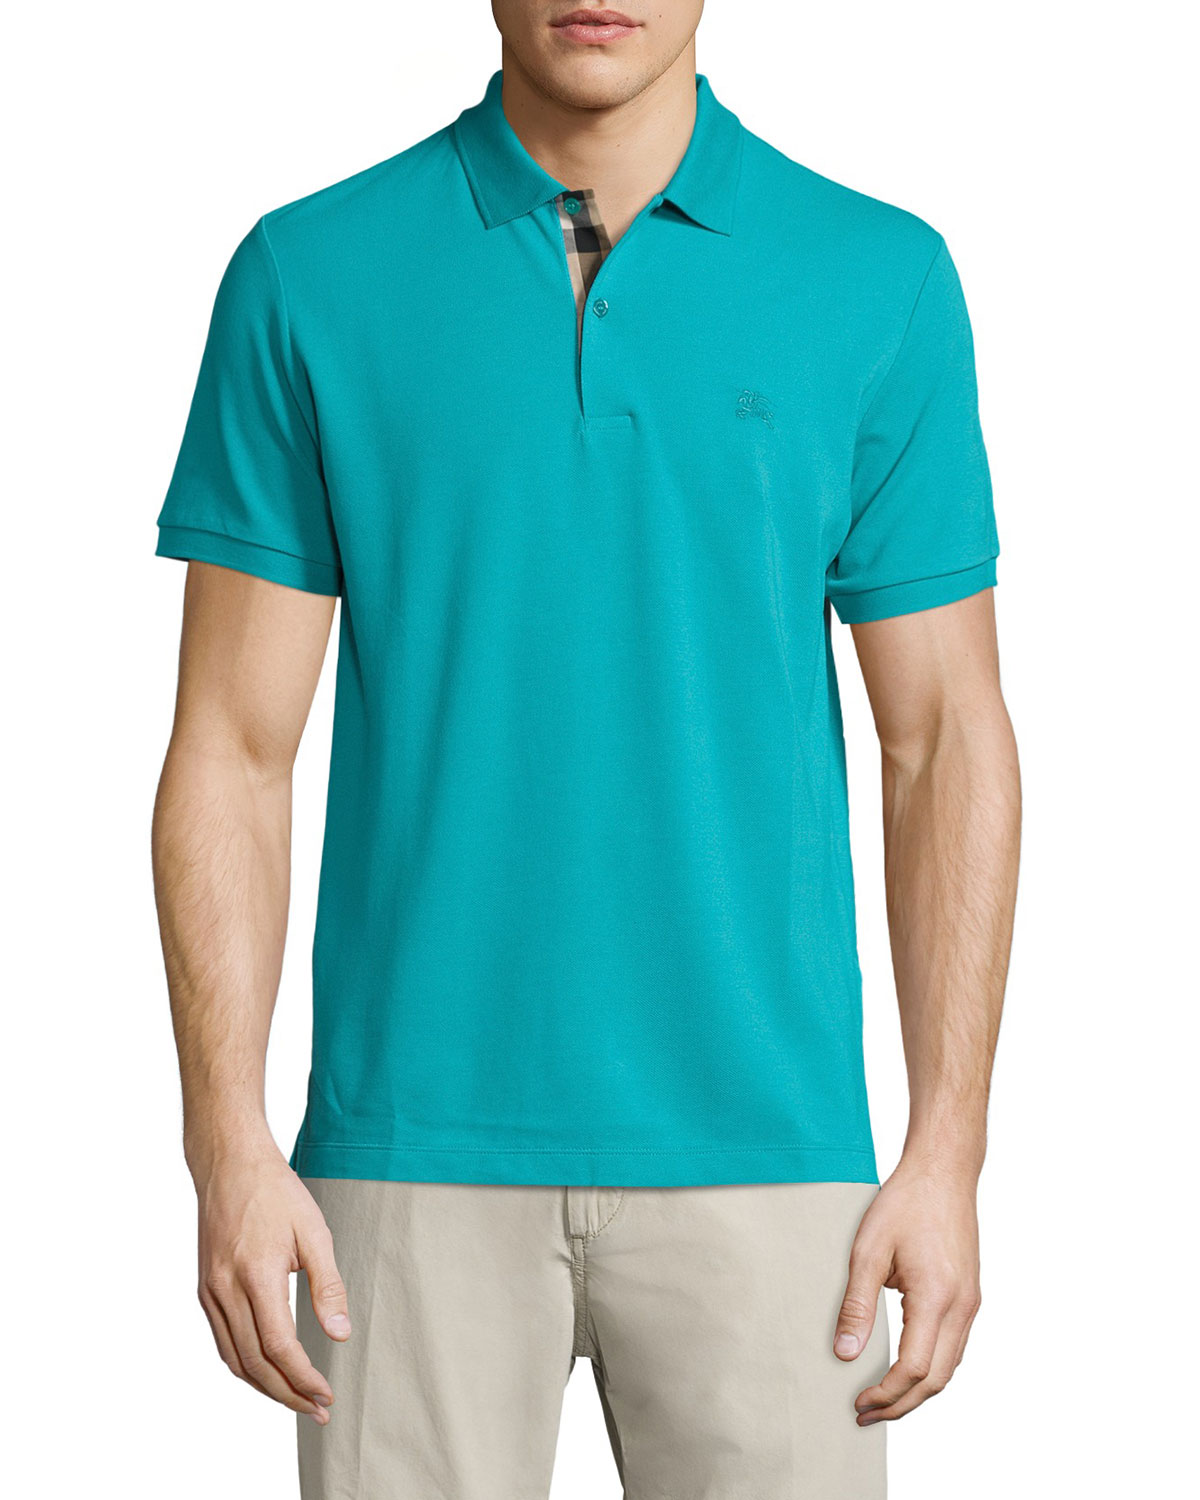 Check-Placket Piqué Polo Shirt, Aqua Green